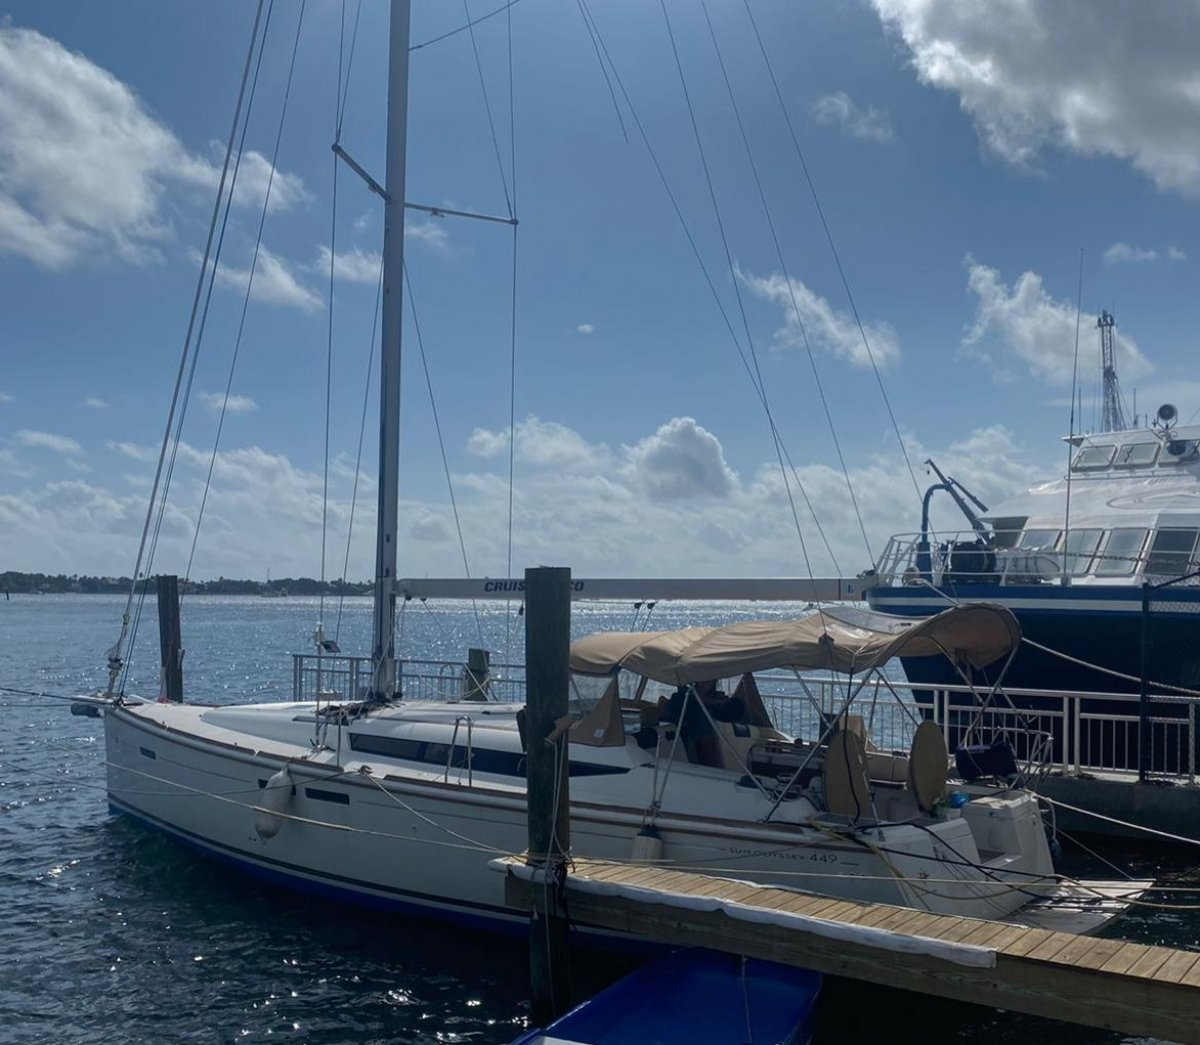 Jeanneau Sun Odyssey 449 - ready to sail away!